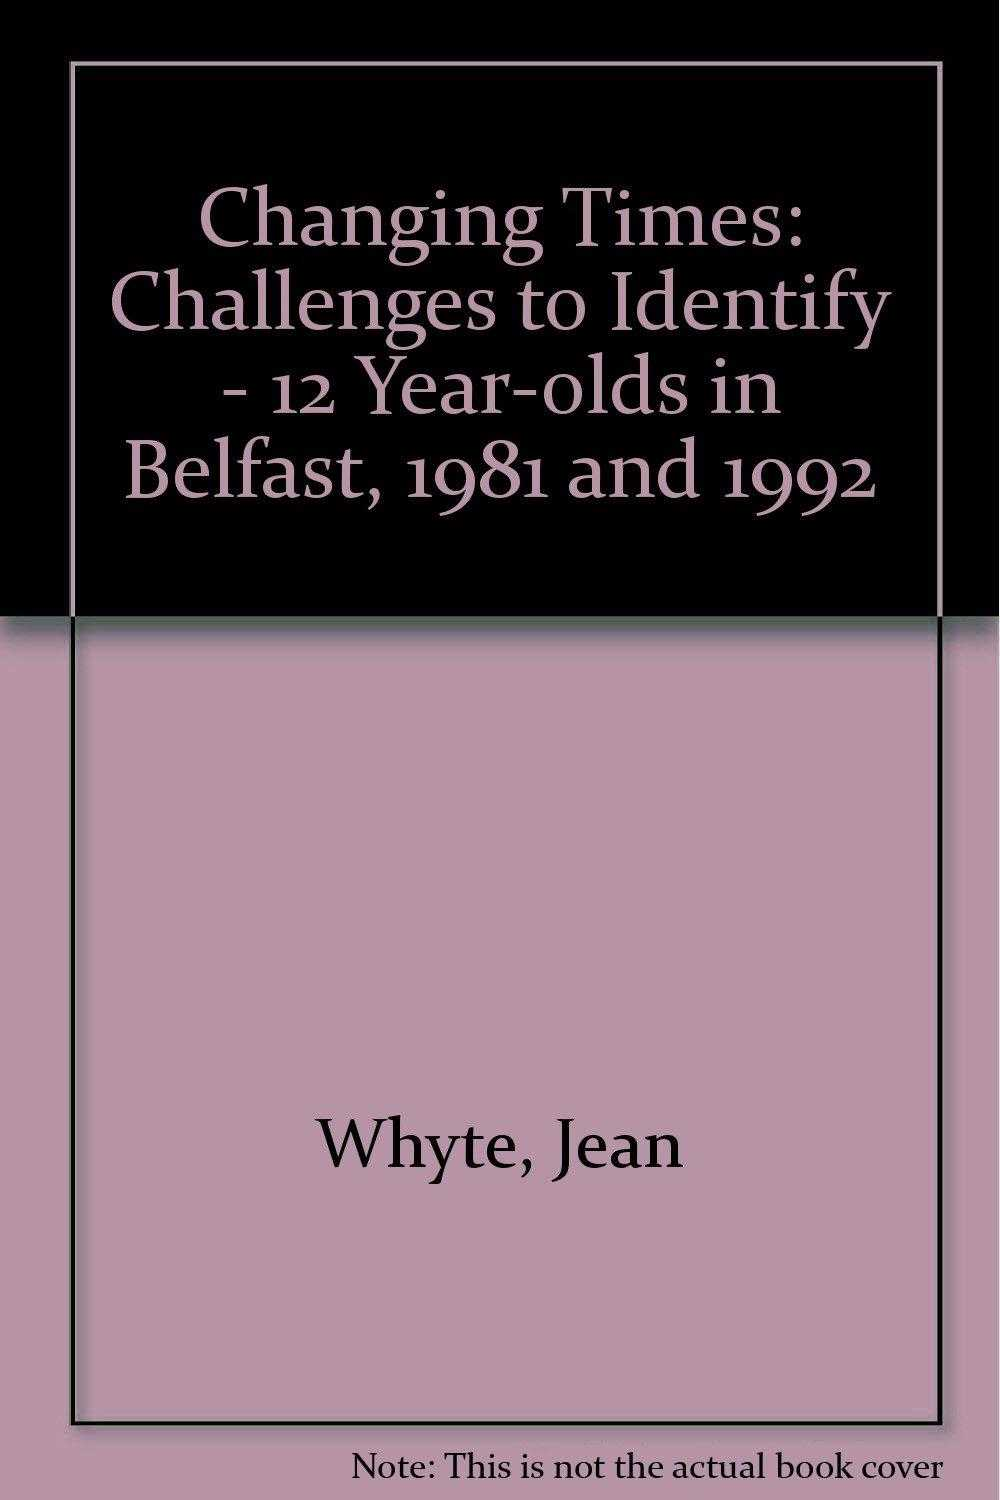 Changing Times: Challenges to Identify - 12 Year-olds in Belfast, 1981 and 19., Whyte, Jean